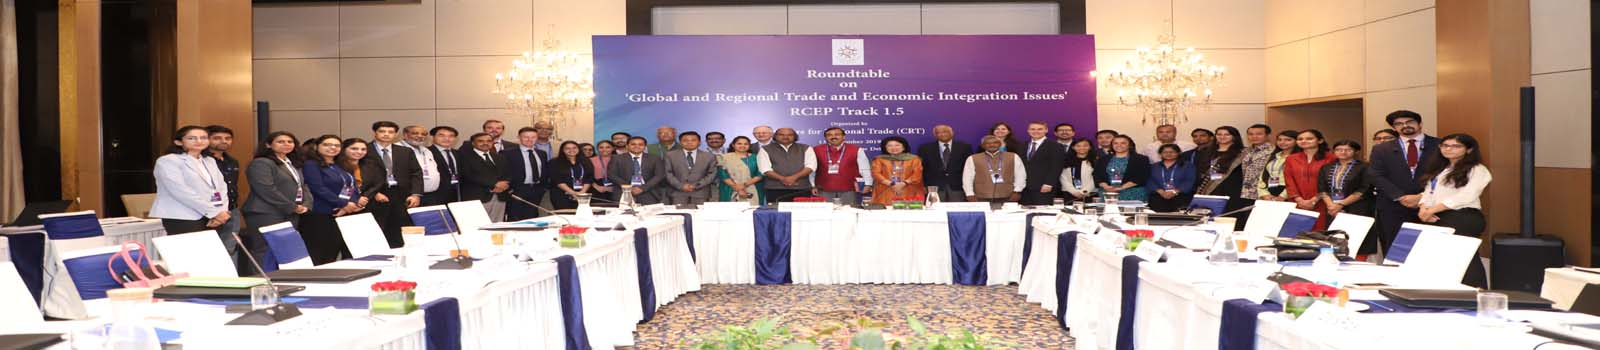 Roundtable on Global and Regional Trade and Economic Integration Issues: RCEP Track 1.5